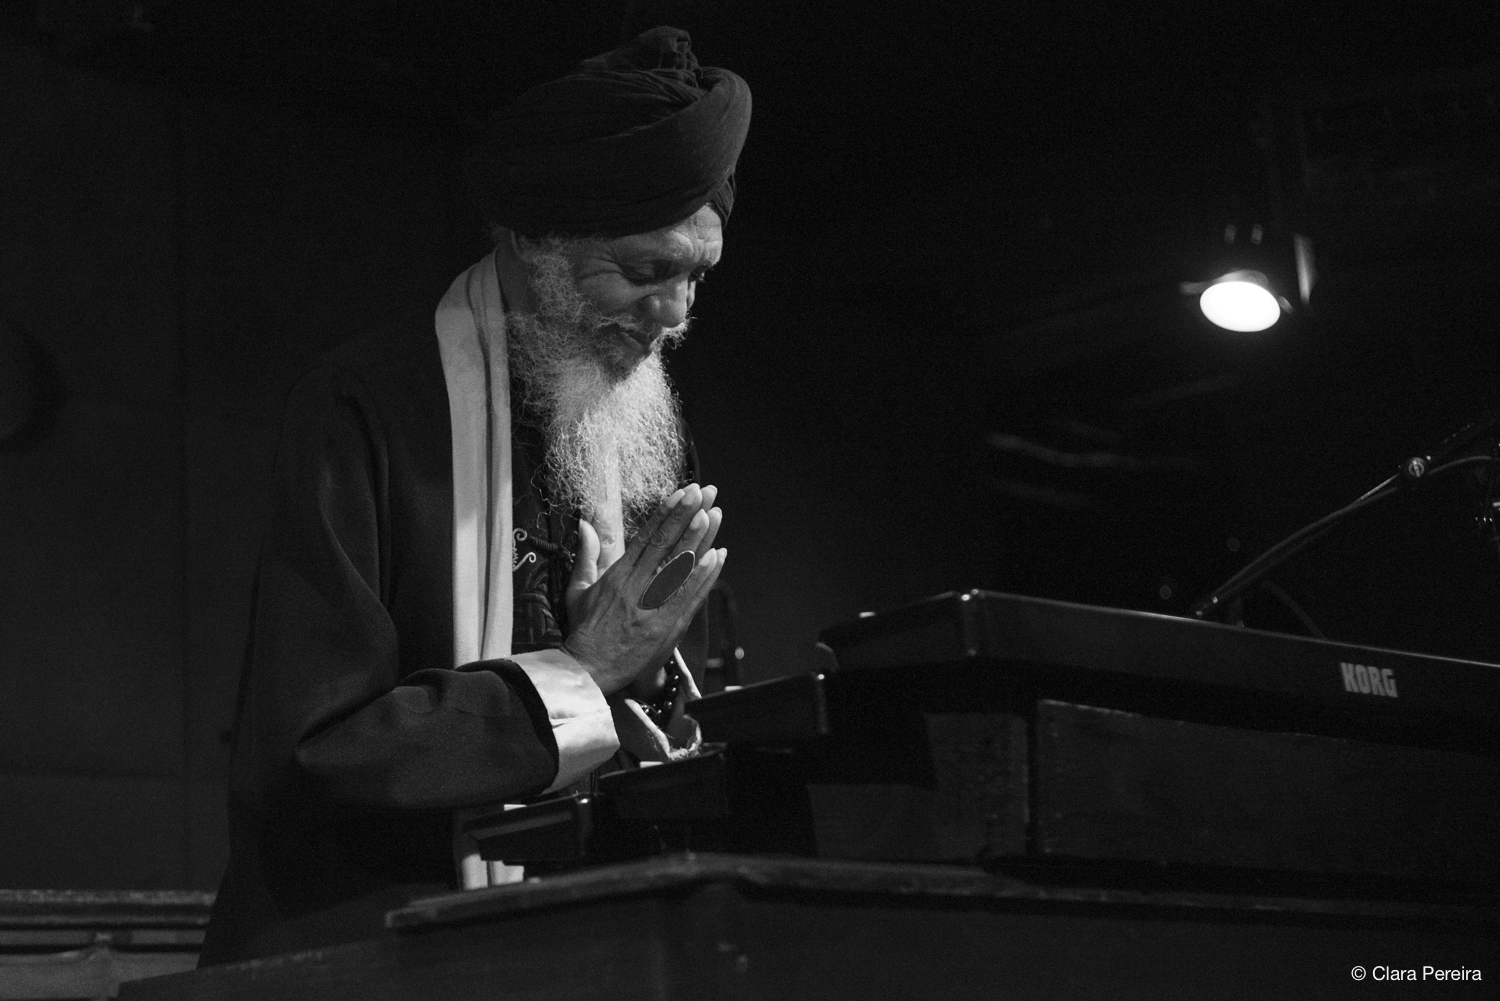 Dr. Lonnie Smith, 2018